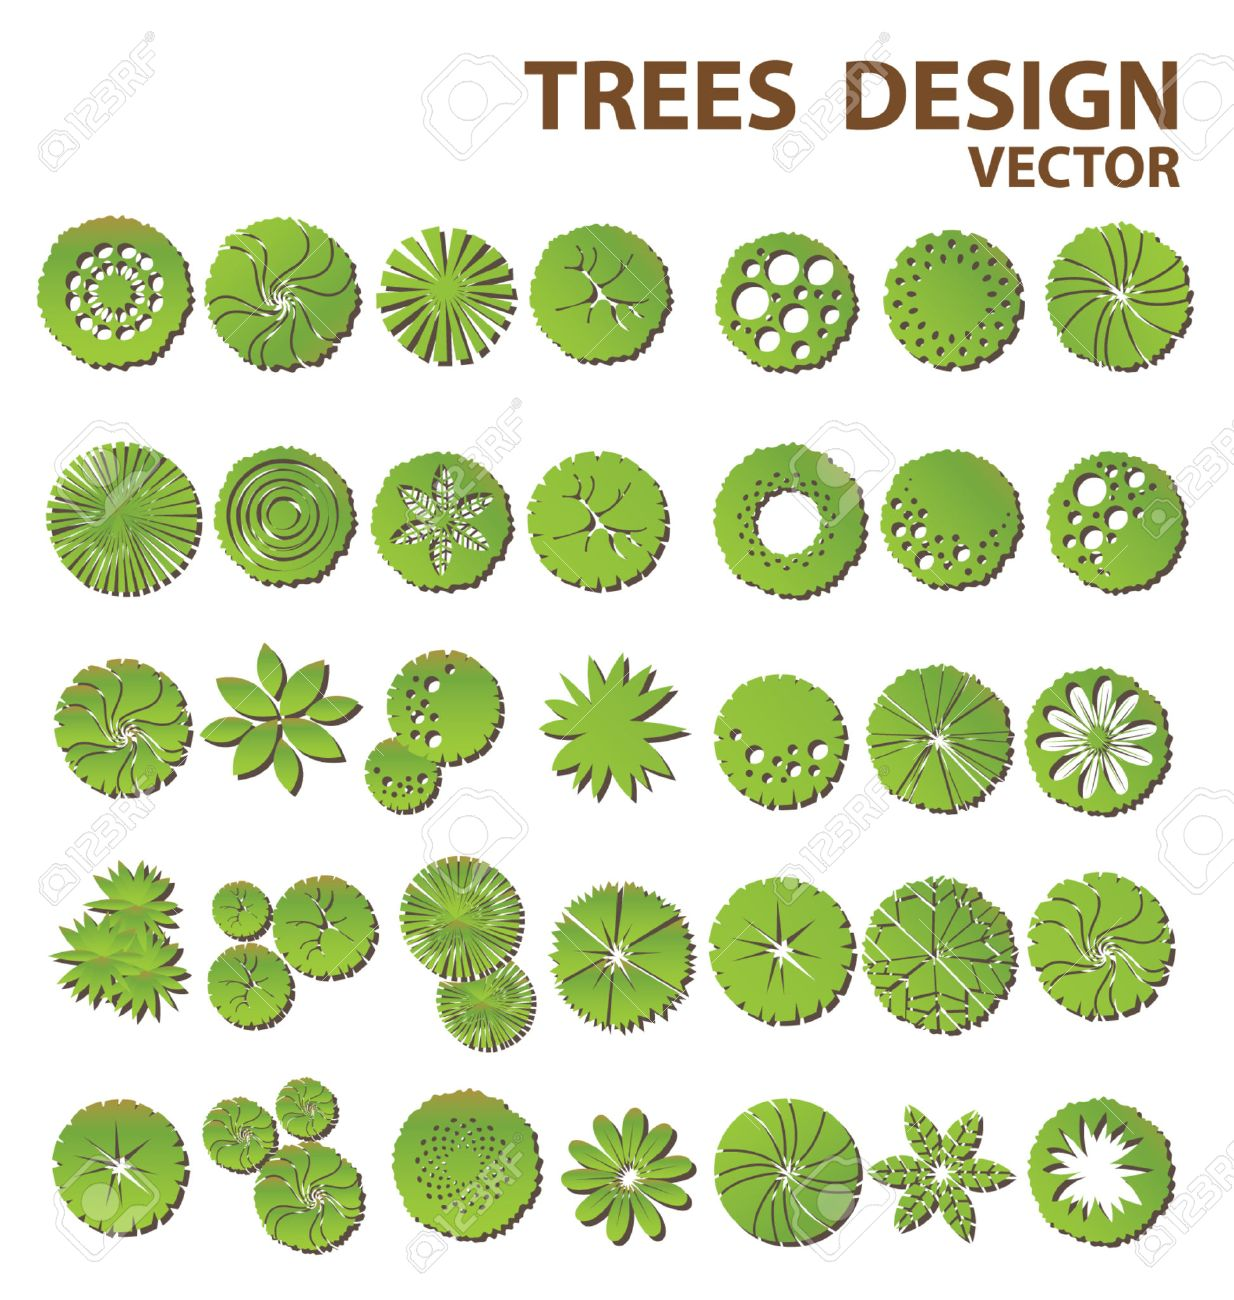 Trees Top View For Landscape Design Royalty Free Cliparts Vectors